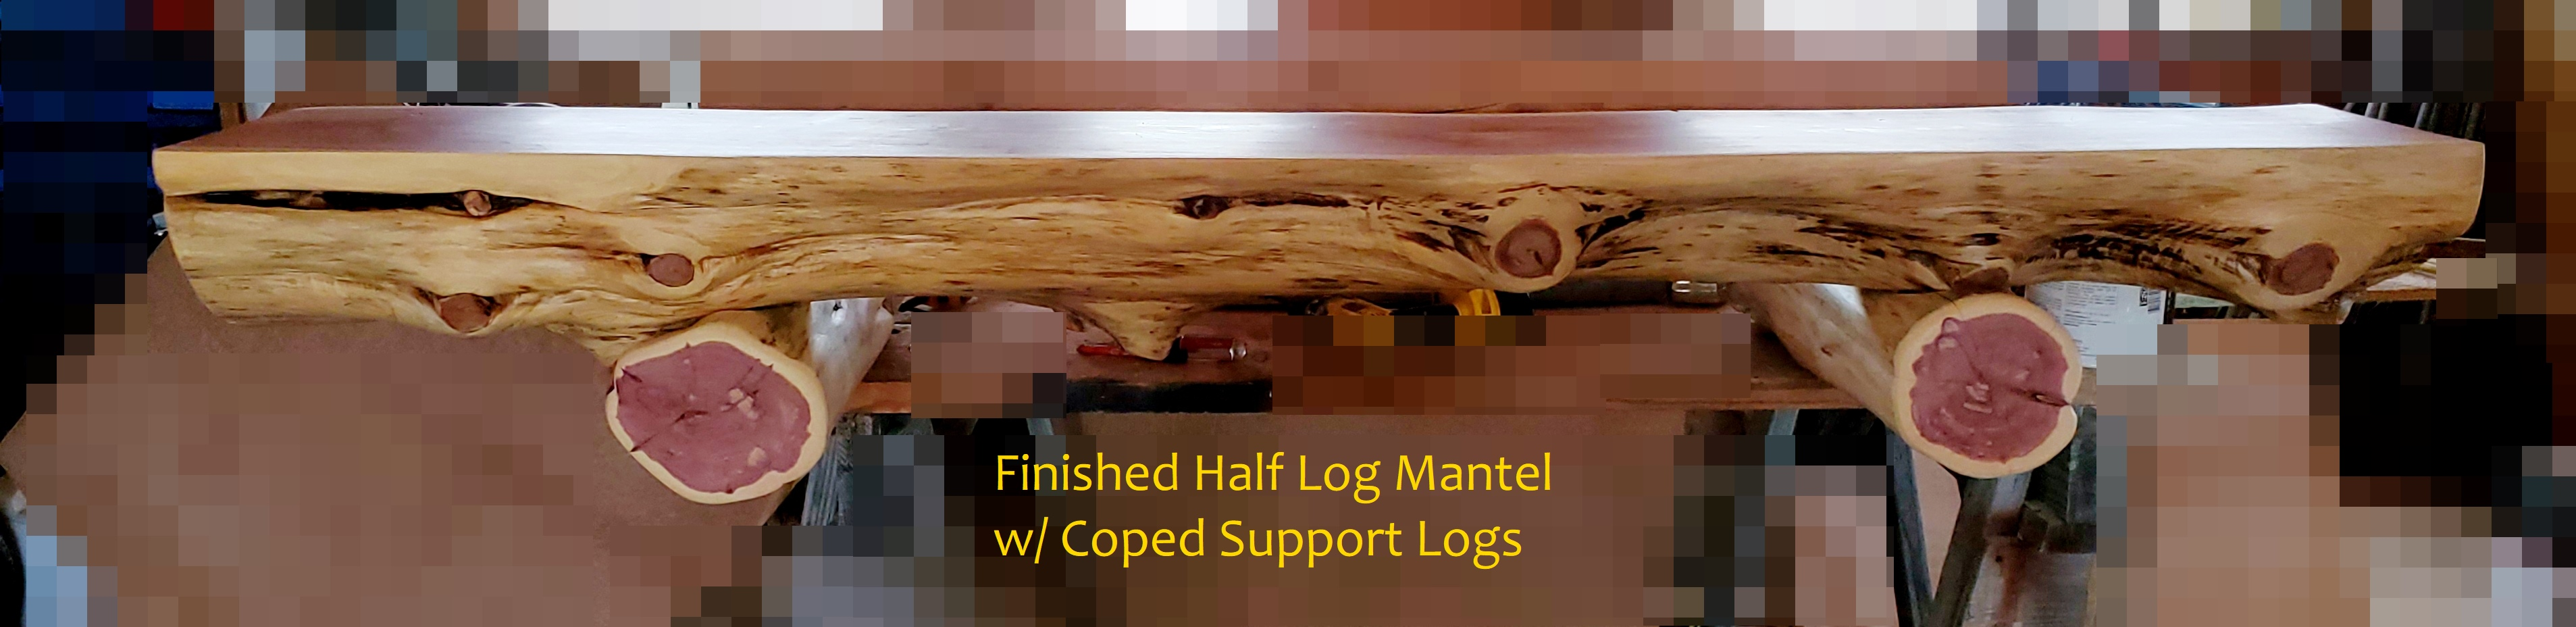 finished half log mantel with supports